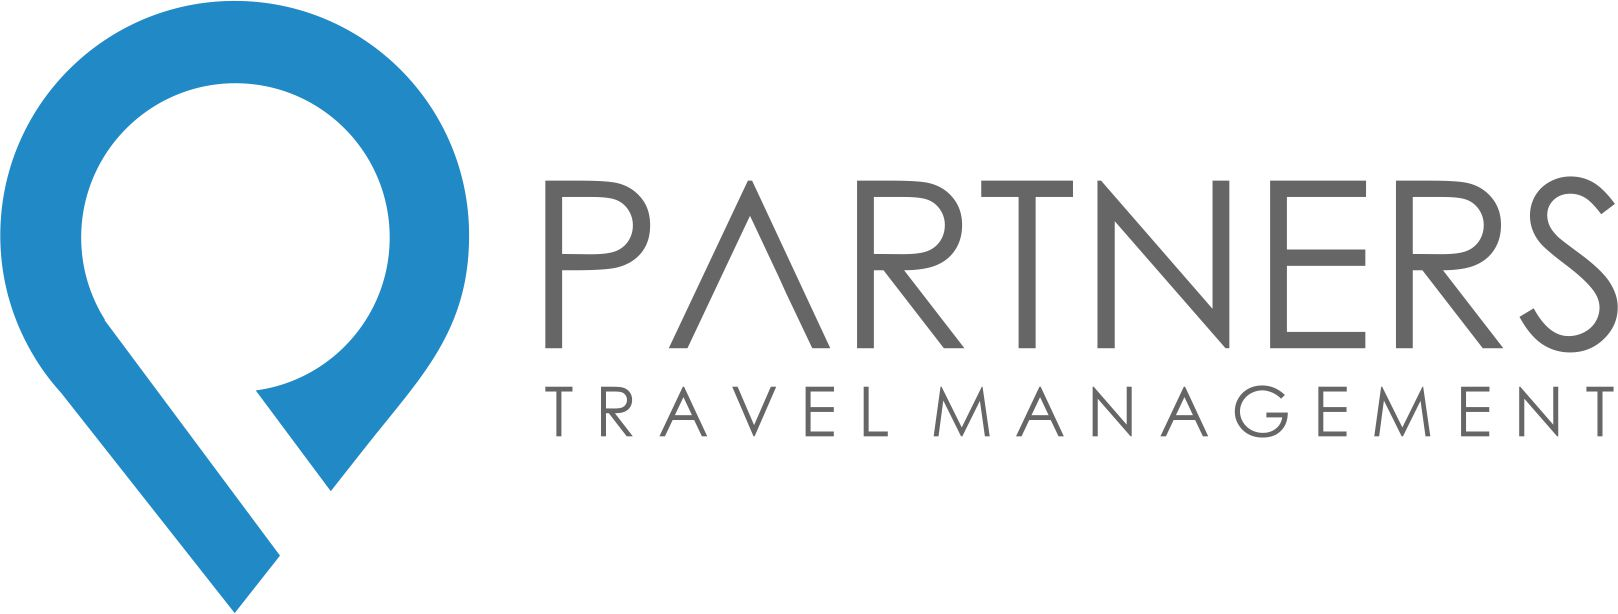 Partners Travel Management